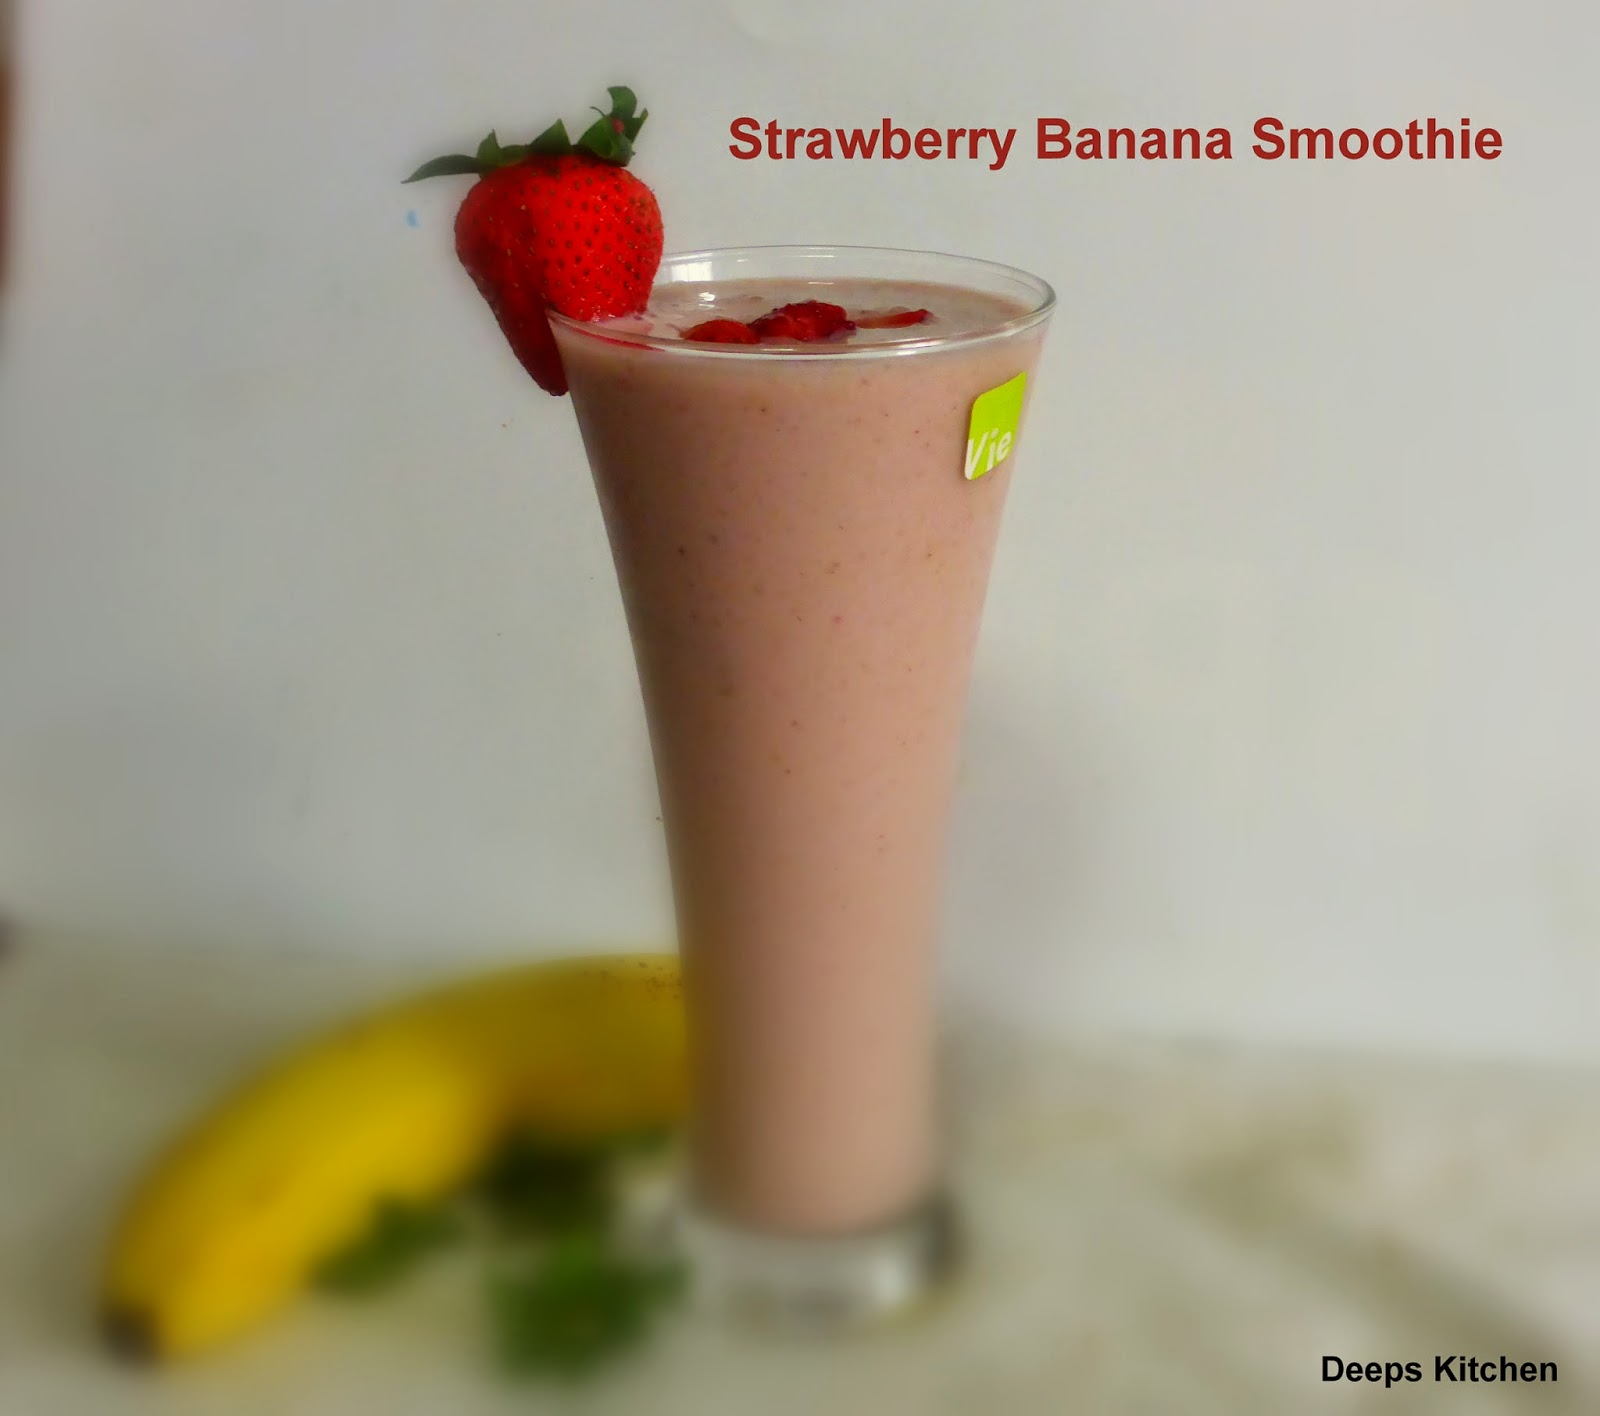 Strawberry Banana Milkshake or smoothie